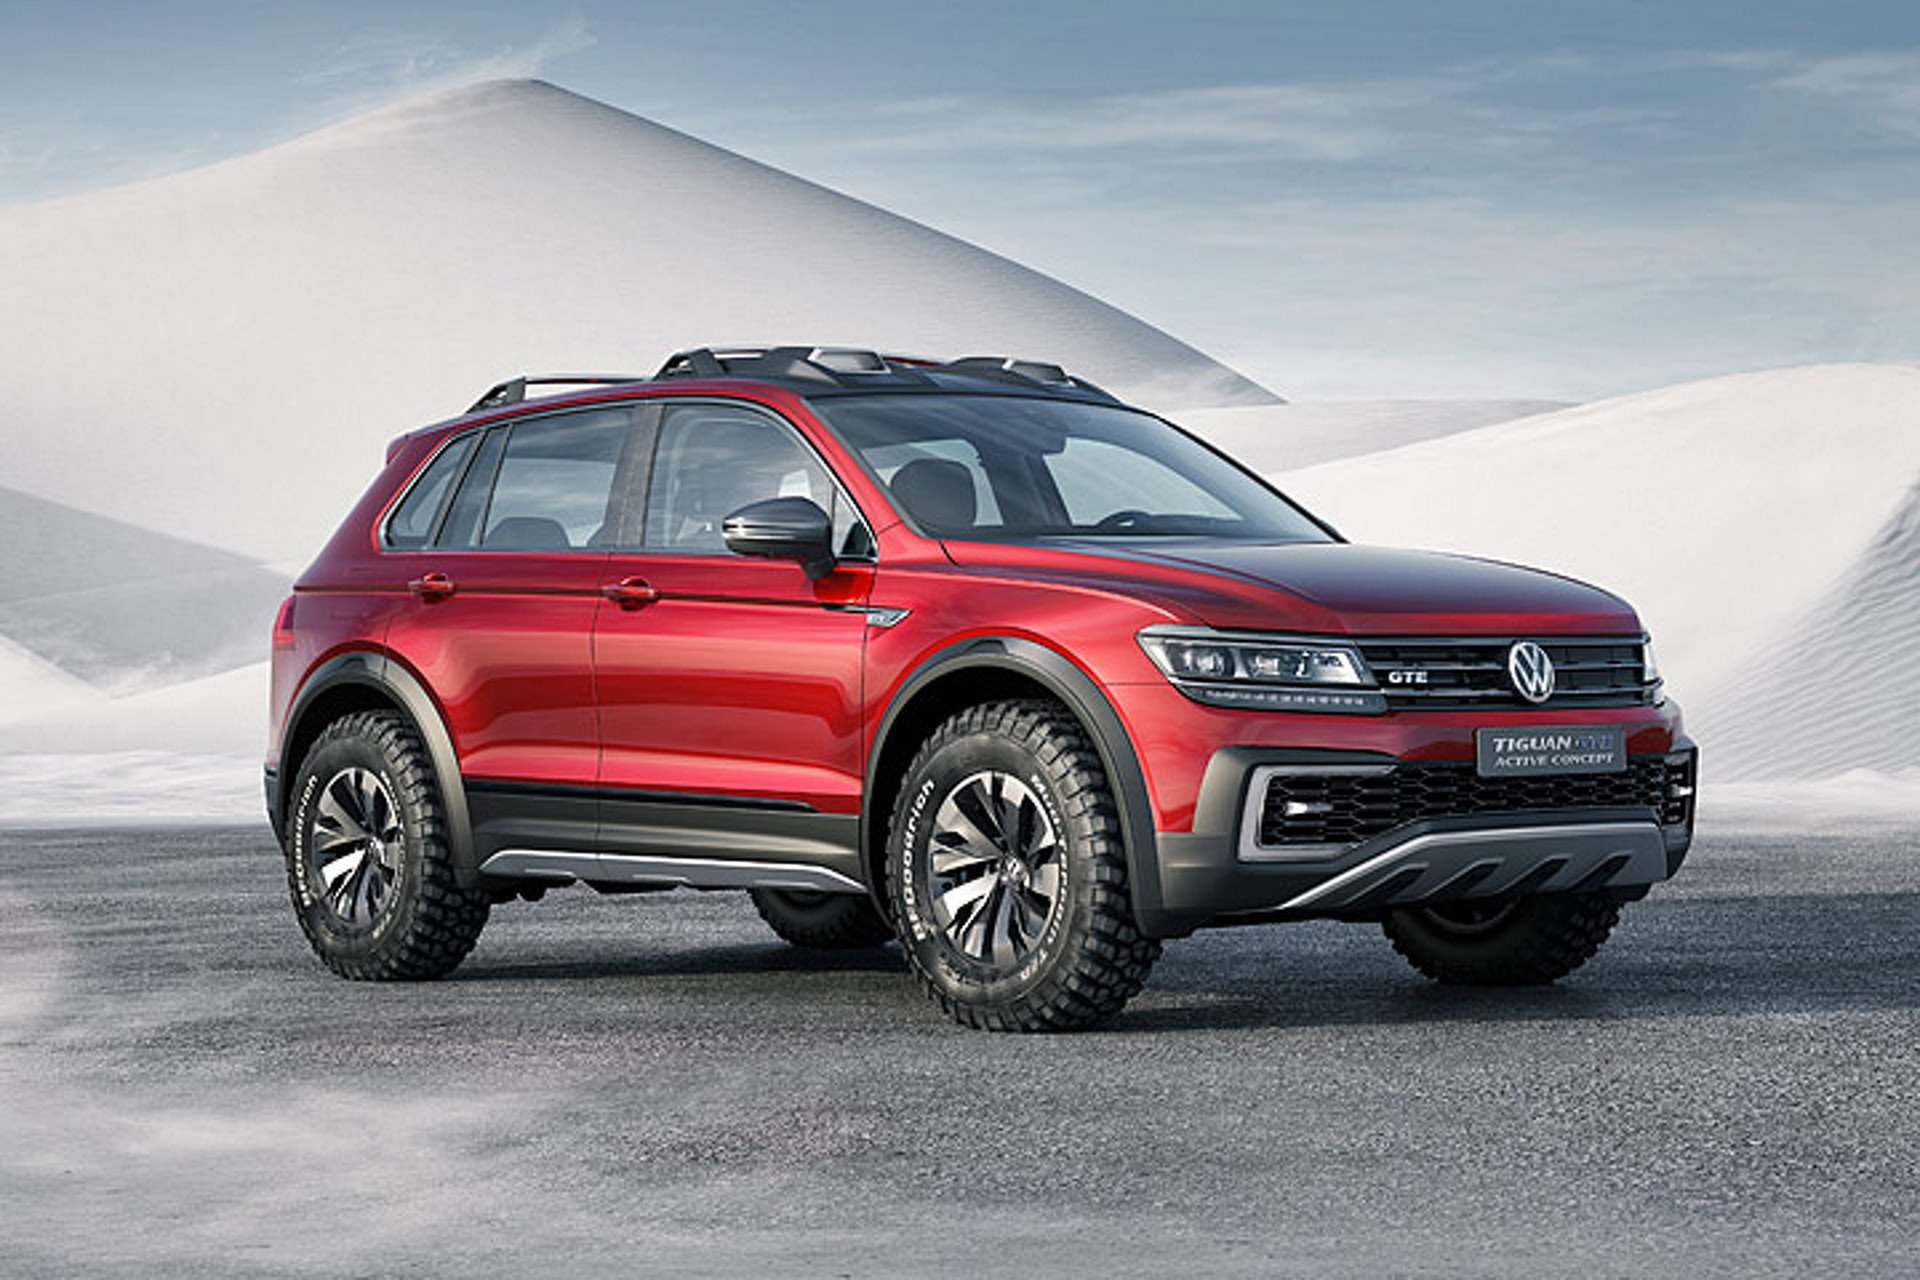 New 2019 Volkswagen-Tiguan 2.0T SEL R-Line 4Motion Tiguan 2.0T SEL R-Line 4Motion for sale $34,995 at M and V Leasing in Brooklyn NY 11223 1